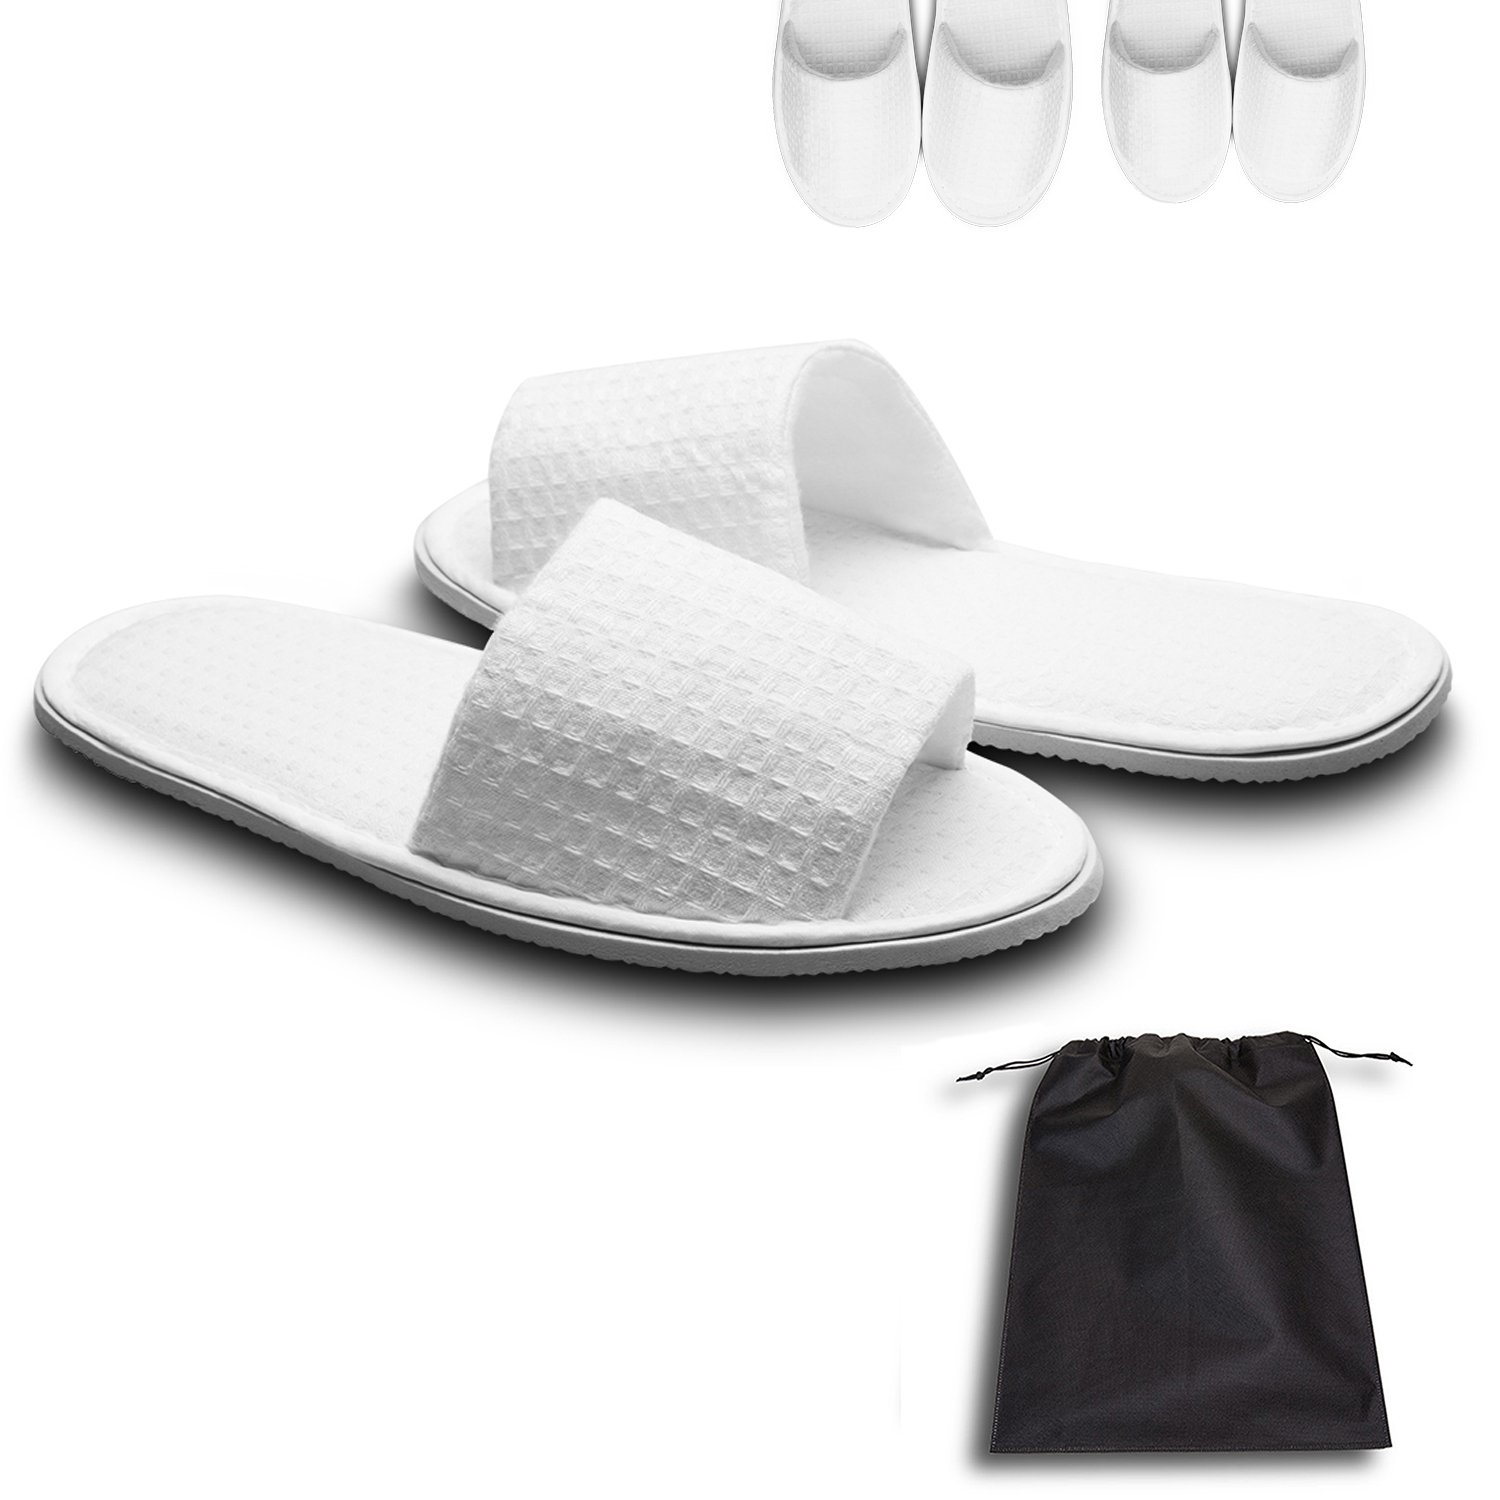 8e6961b820e4 echoapple 10 Pairs of Waffle Open Toe White Slippers-One Size Fit Most Men  and